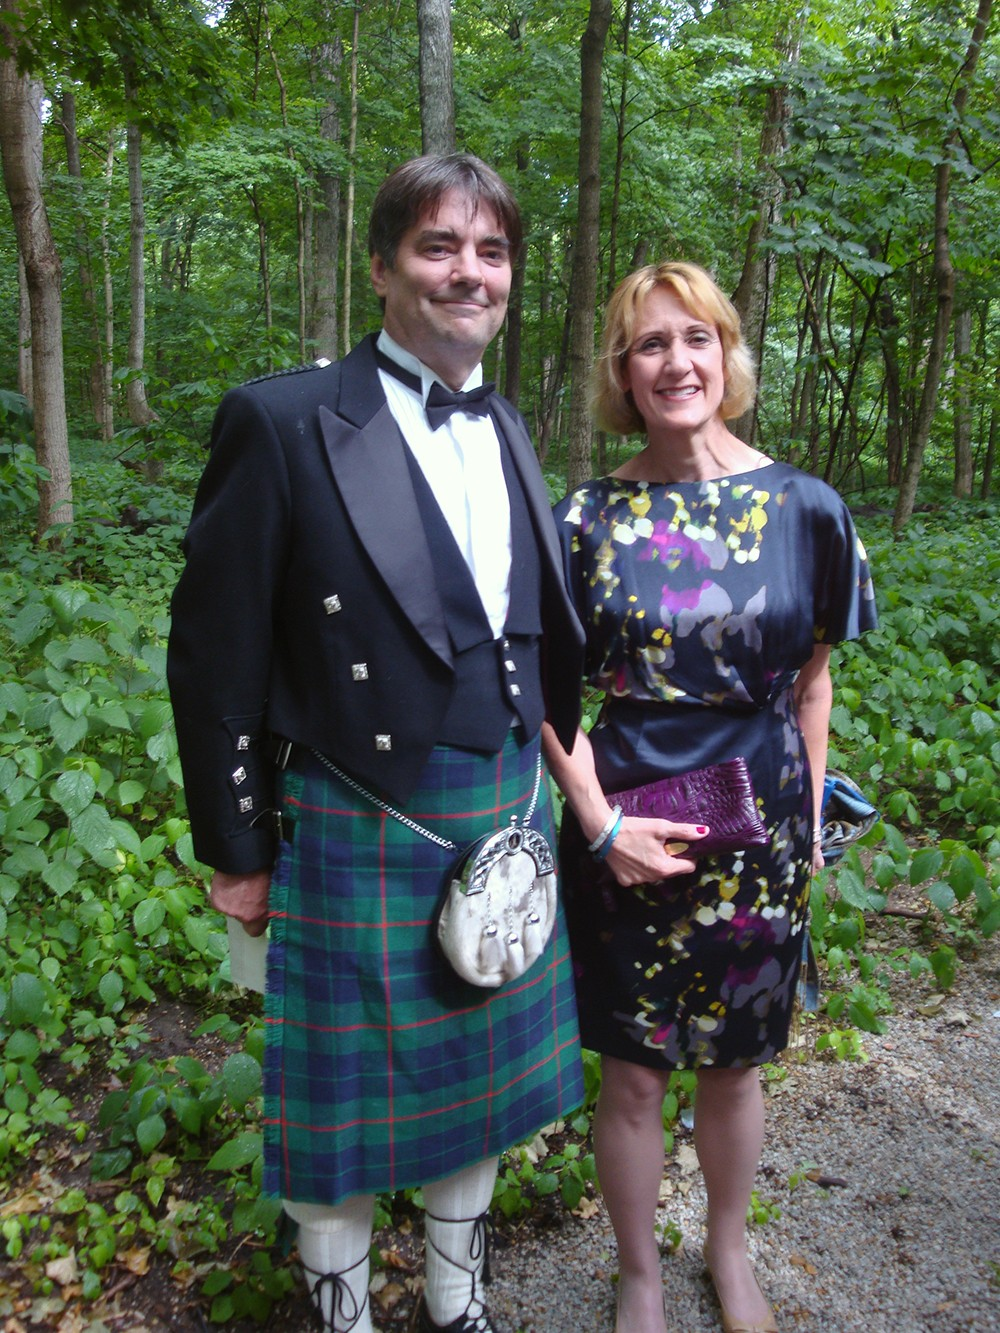 Marjorie and Rich with wooded background